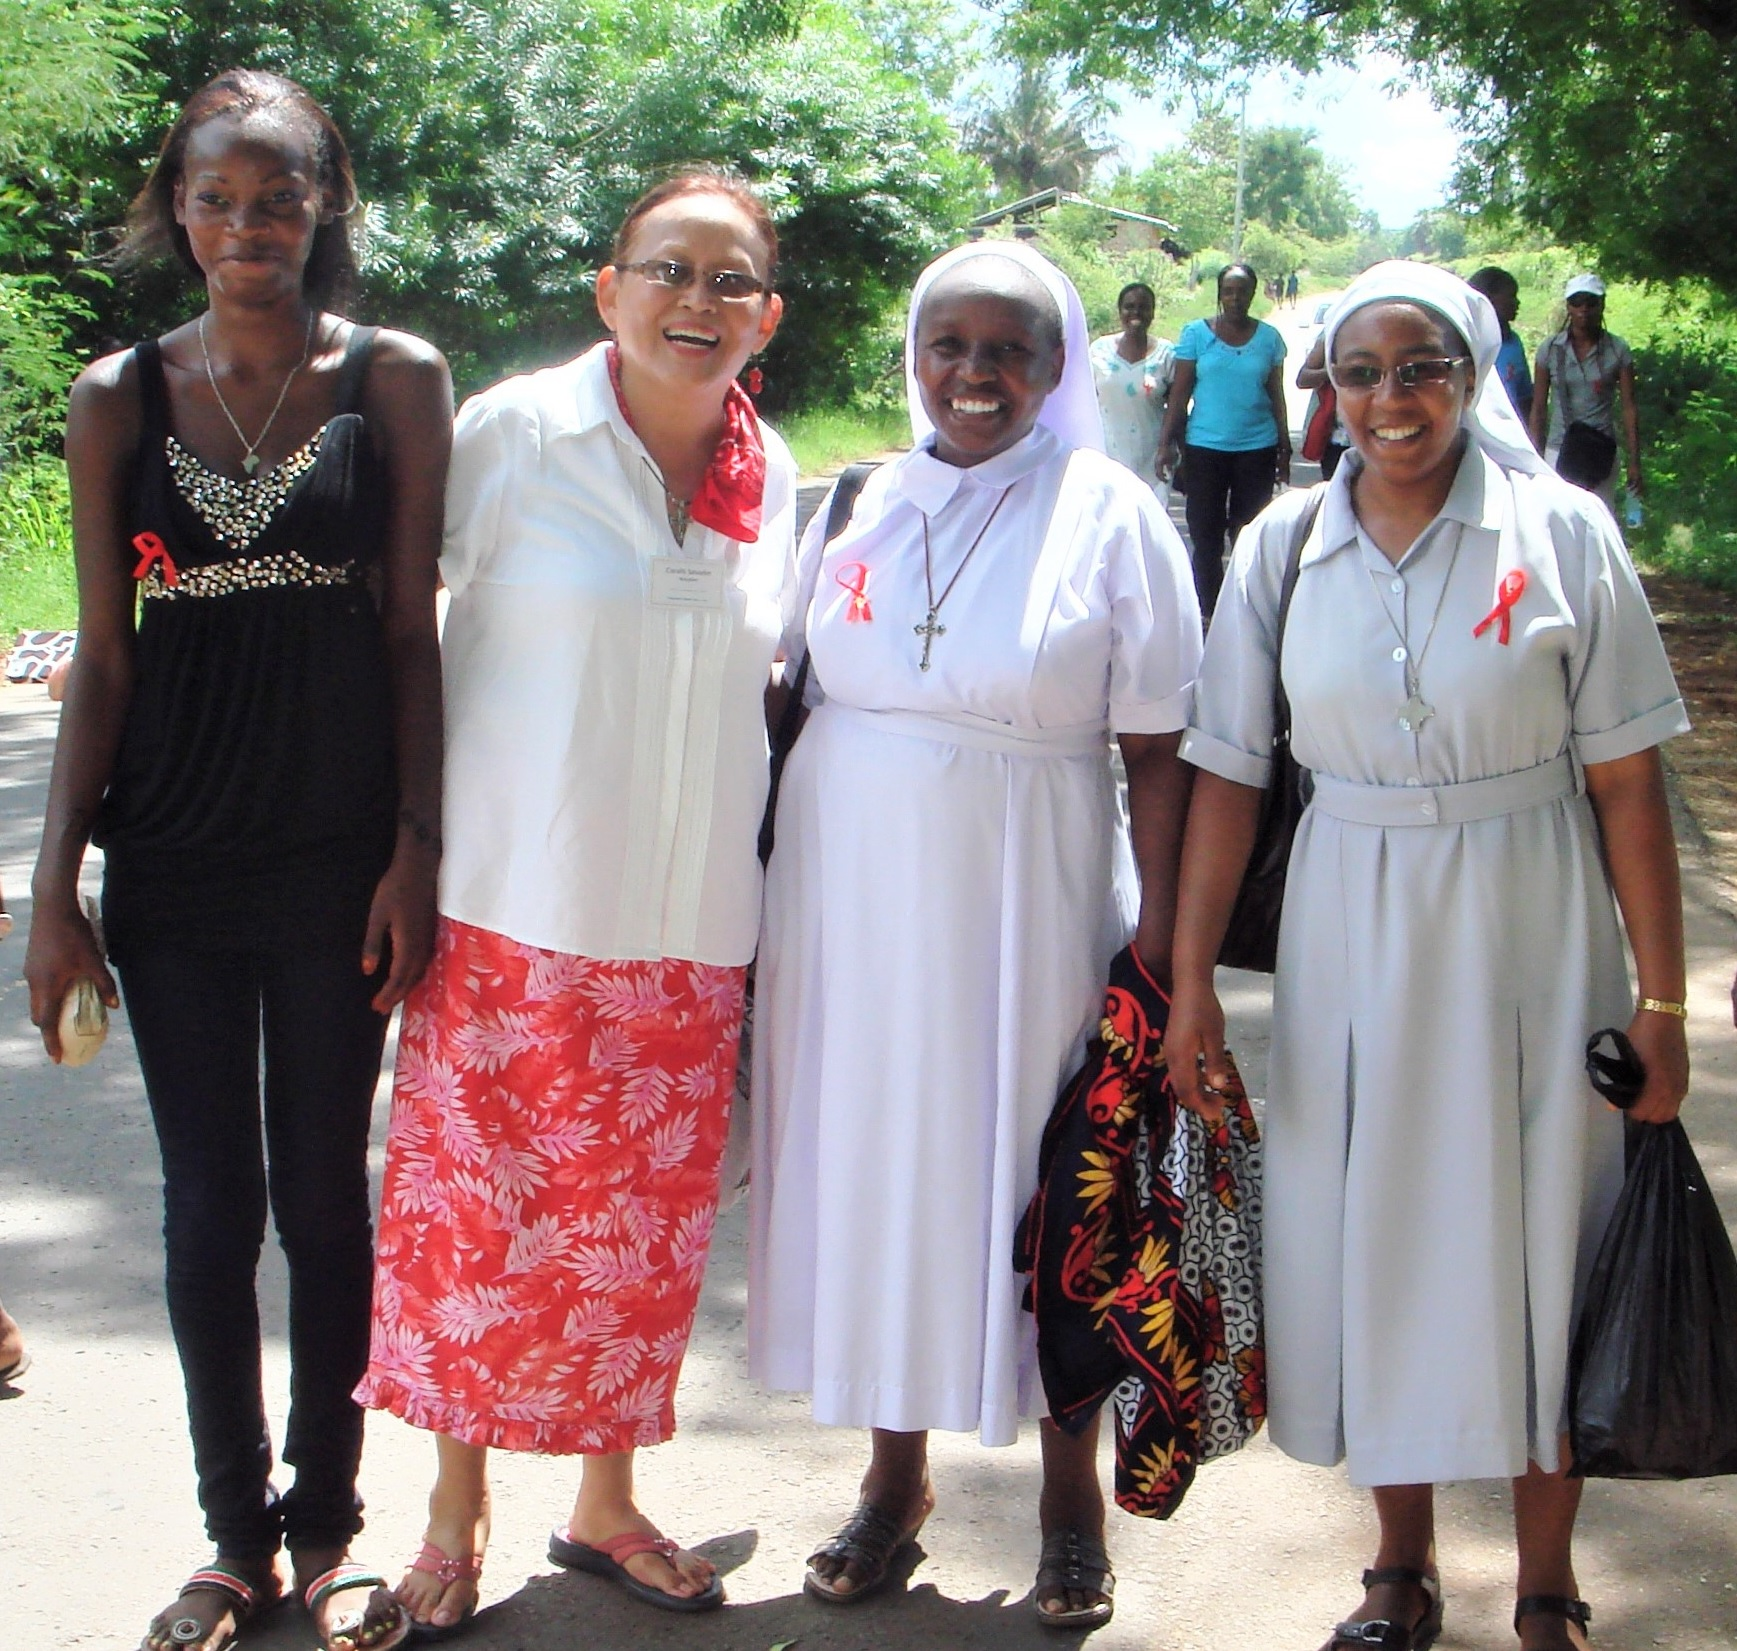 Maryknoll Lay Missioner Coralis Salvador (second from left)